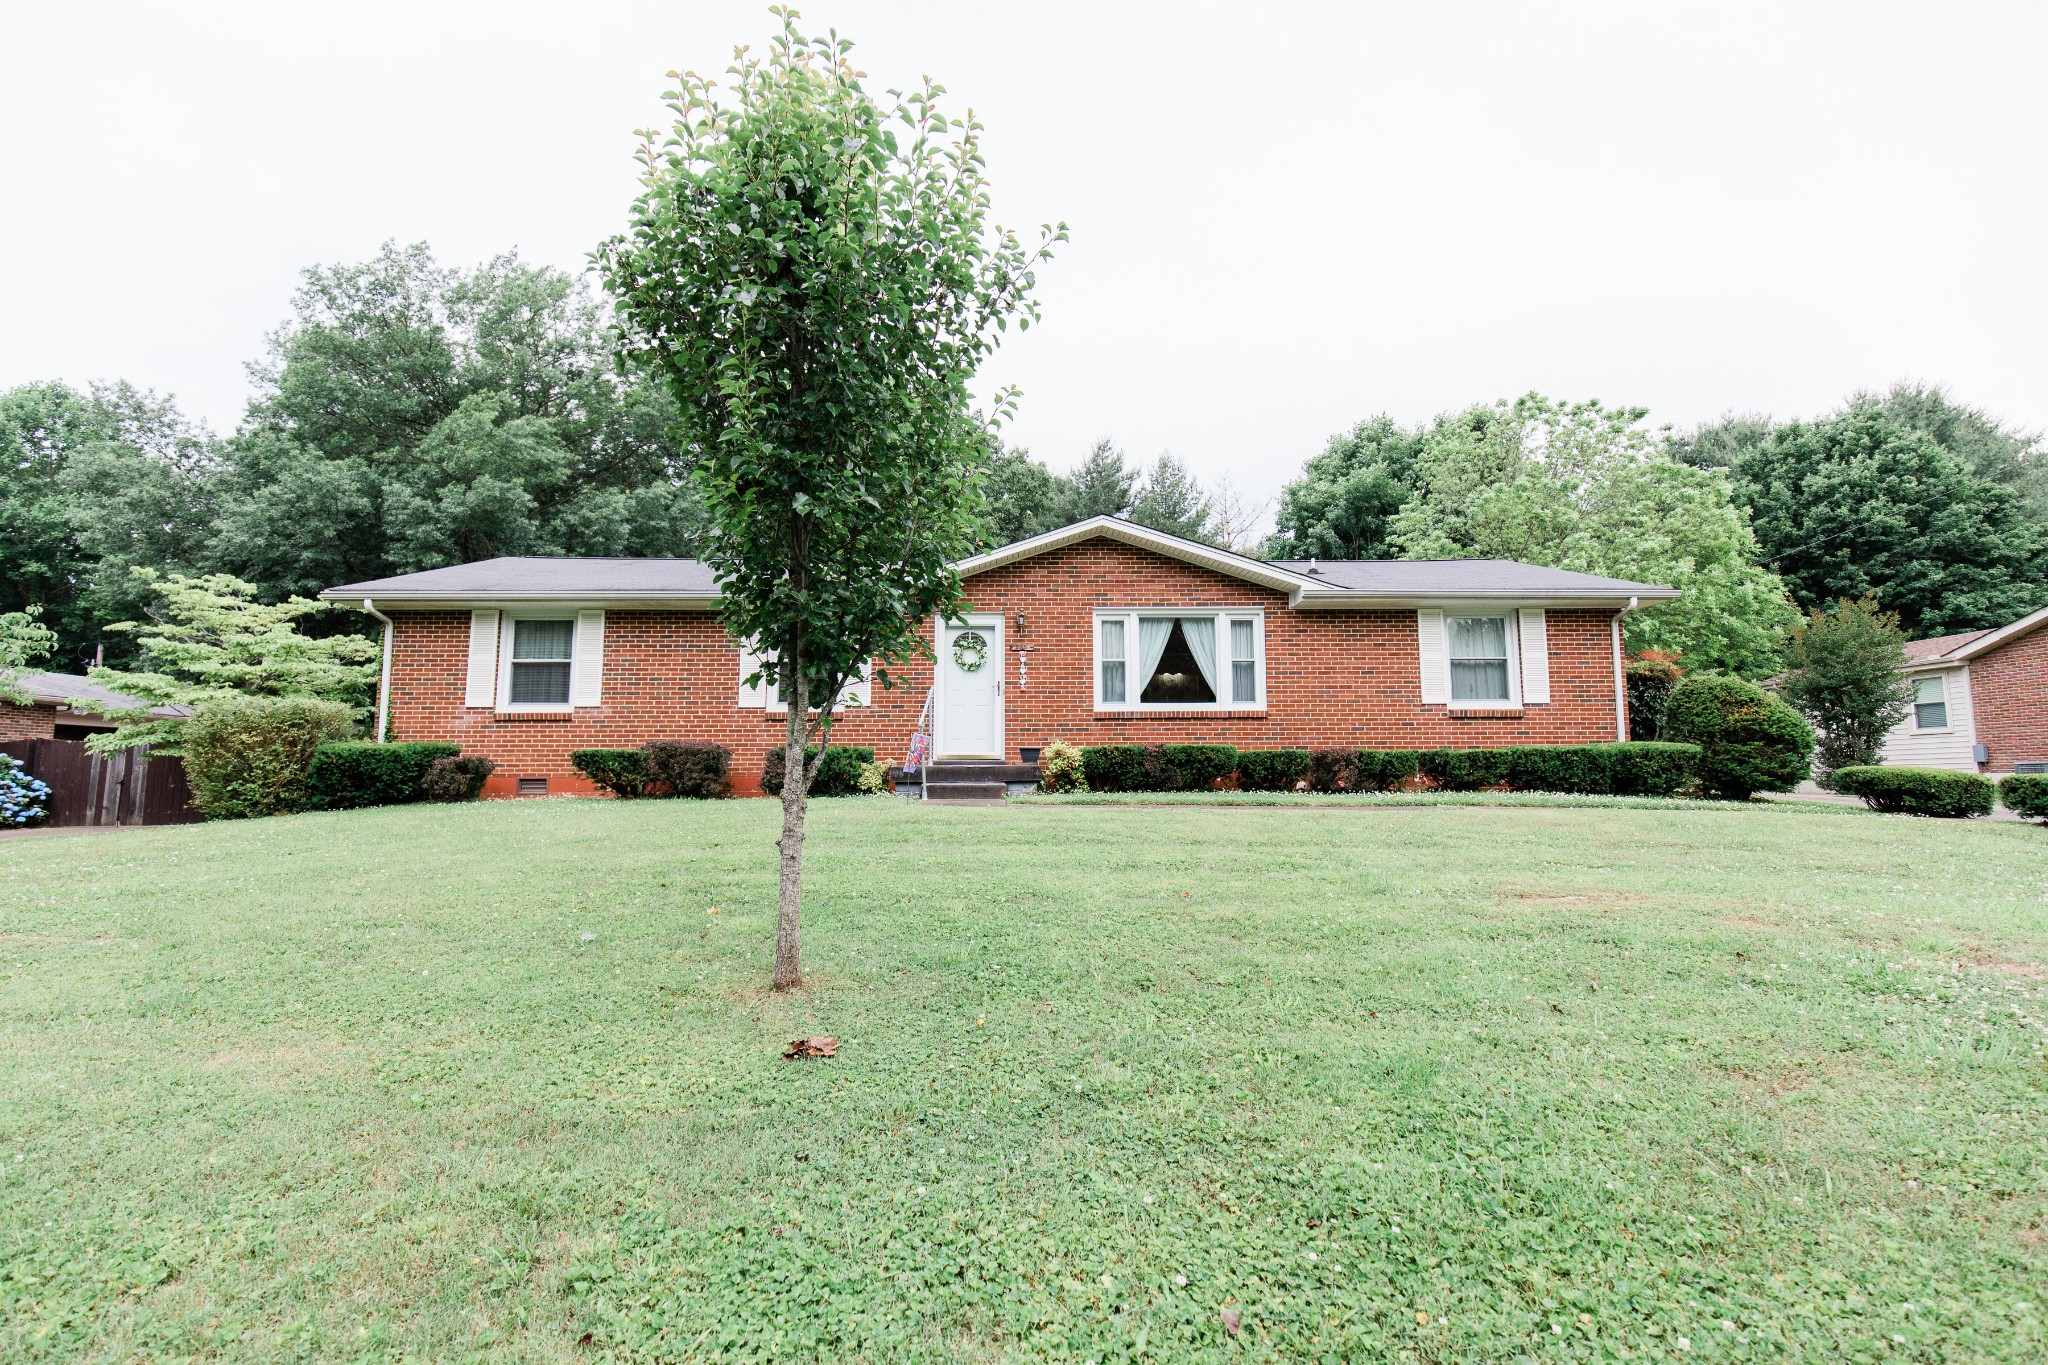 This Cozy, well-cared for, all brick home on large lot in established neighborhood. Could be a Great First Home, or rental property. This home comes with, 3BD, 1.5 bath, eat in kitchen, and large Patio lots of potential and  great location.